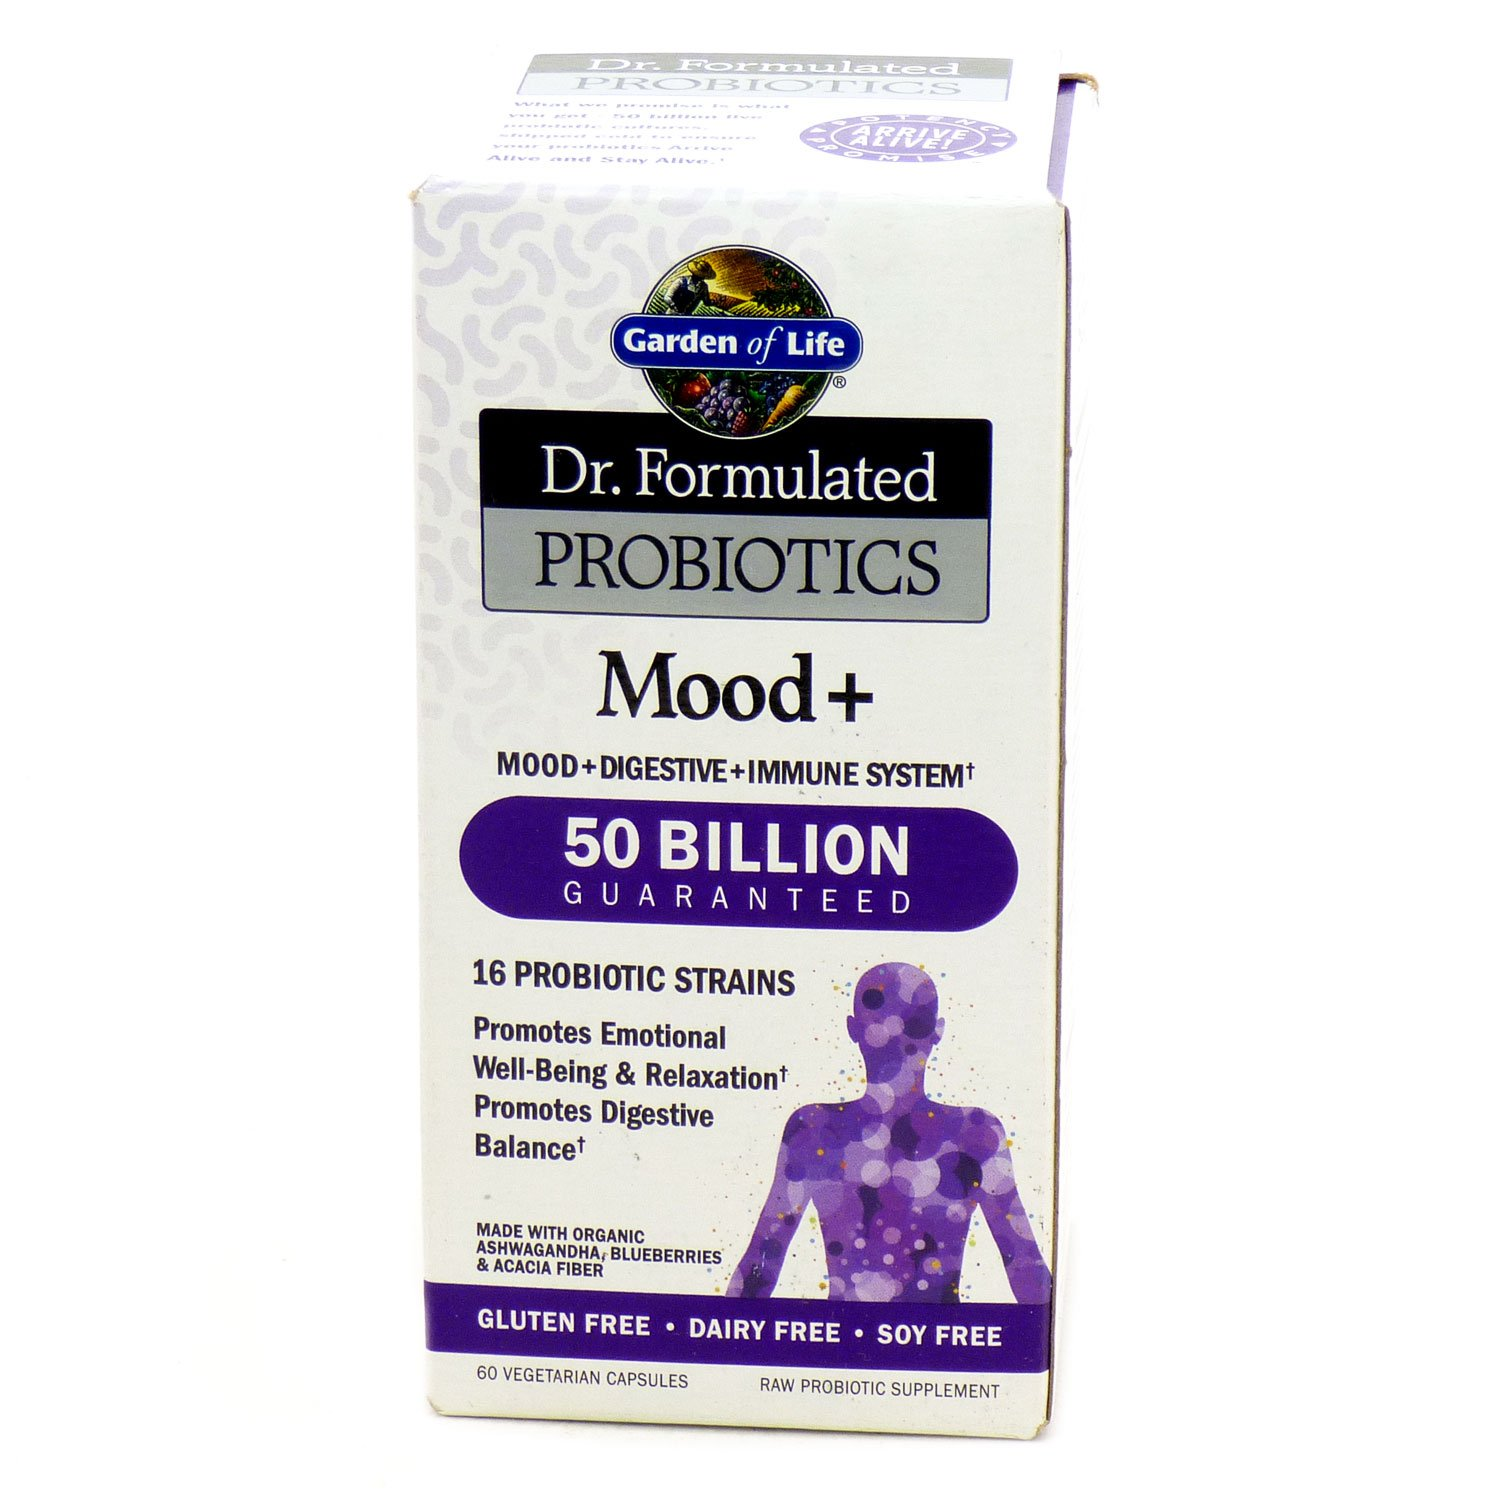 of ultimate garden ice probiotics life dr care formulated raw mood pr veggie caps